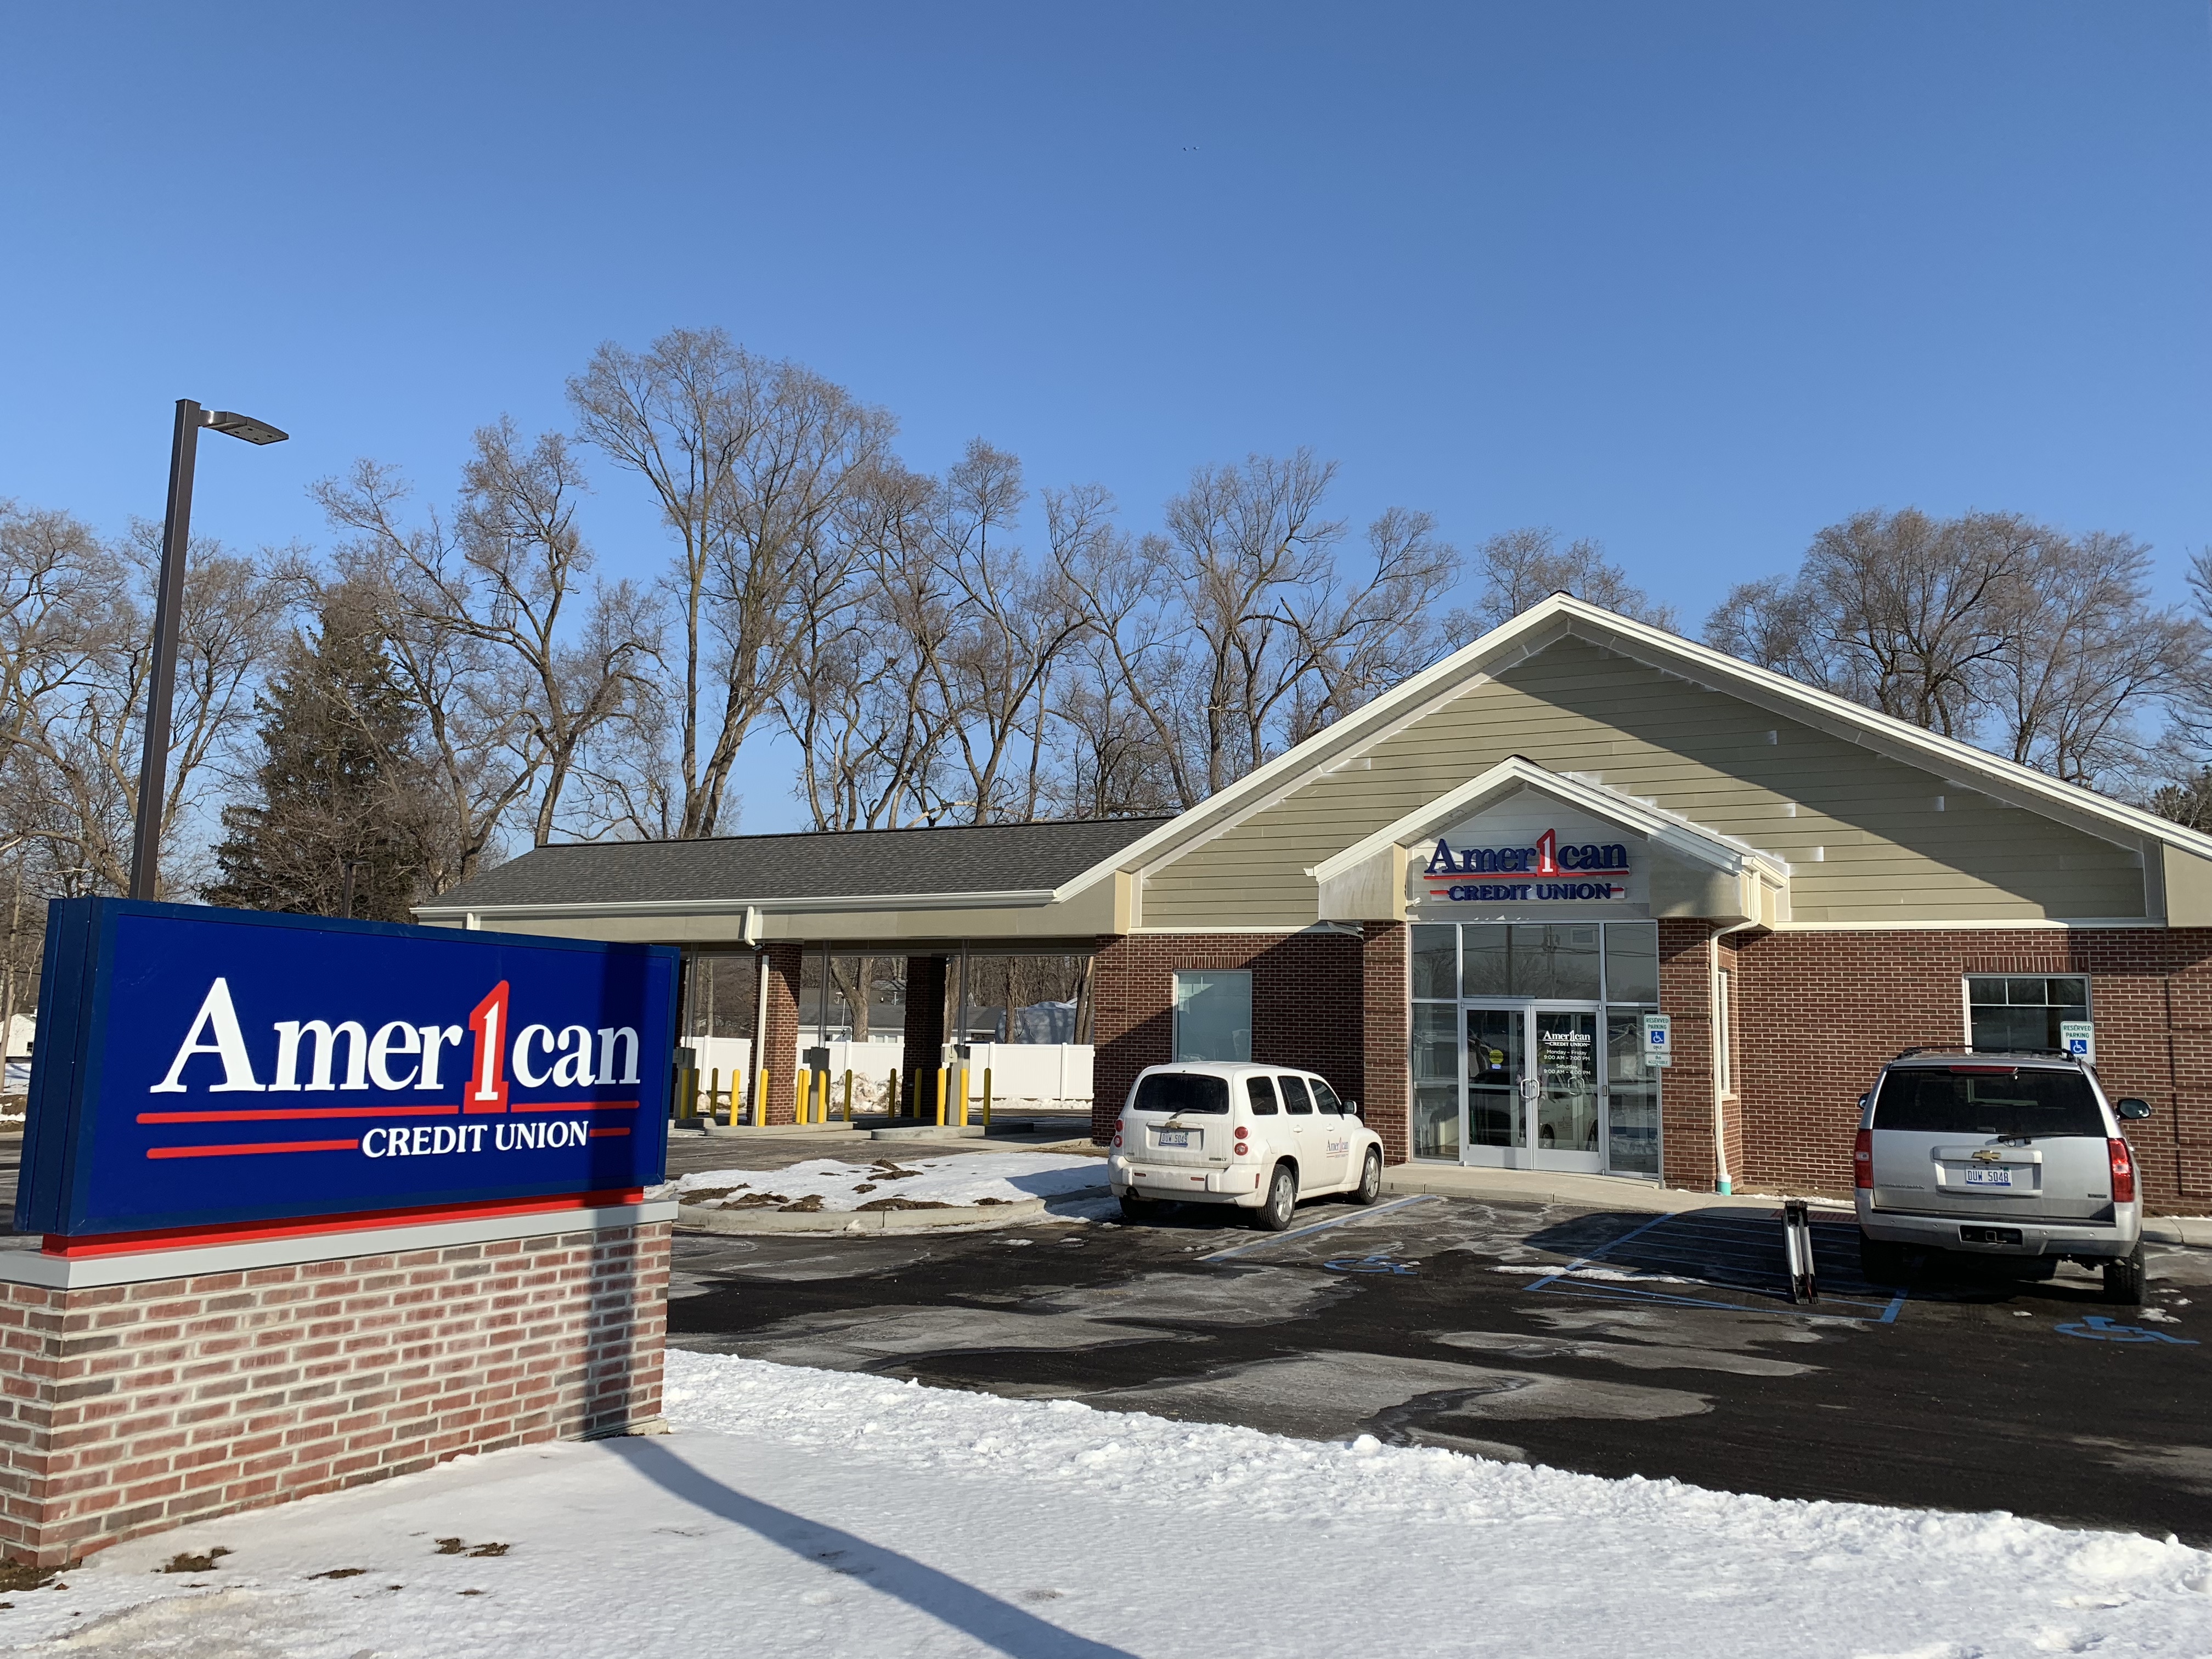 American 1 Credit Union opens new branch in Michigan Center, MI.